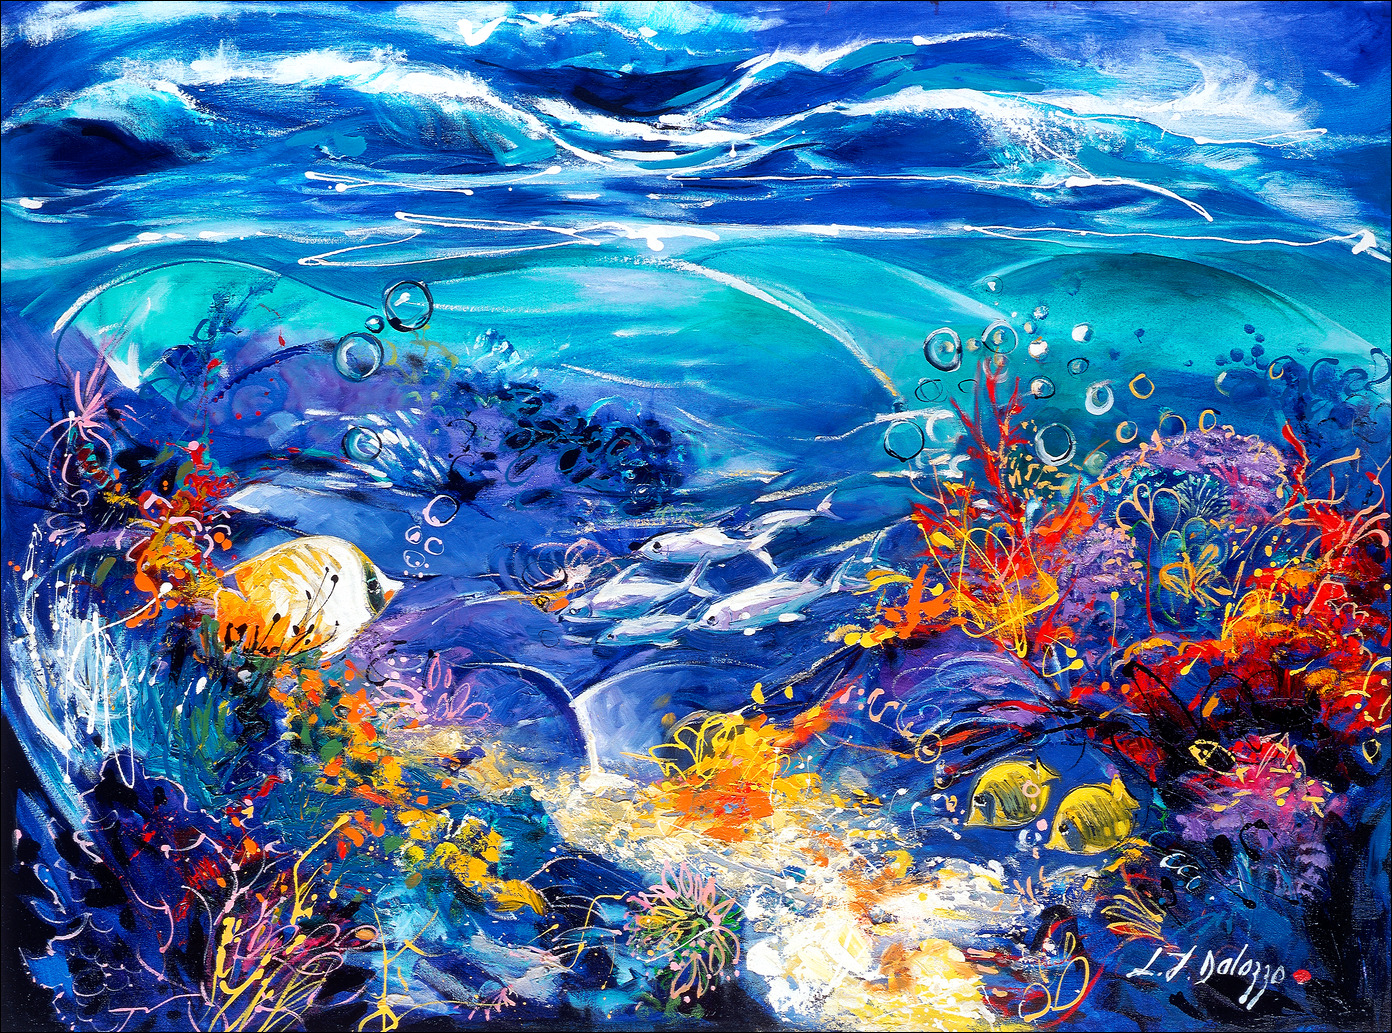 Cascading-Waves-Lucette-Judith-Dalozzo